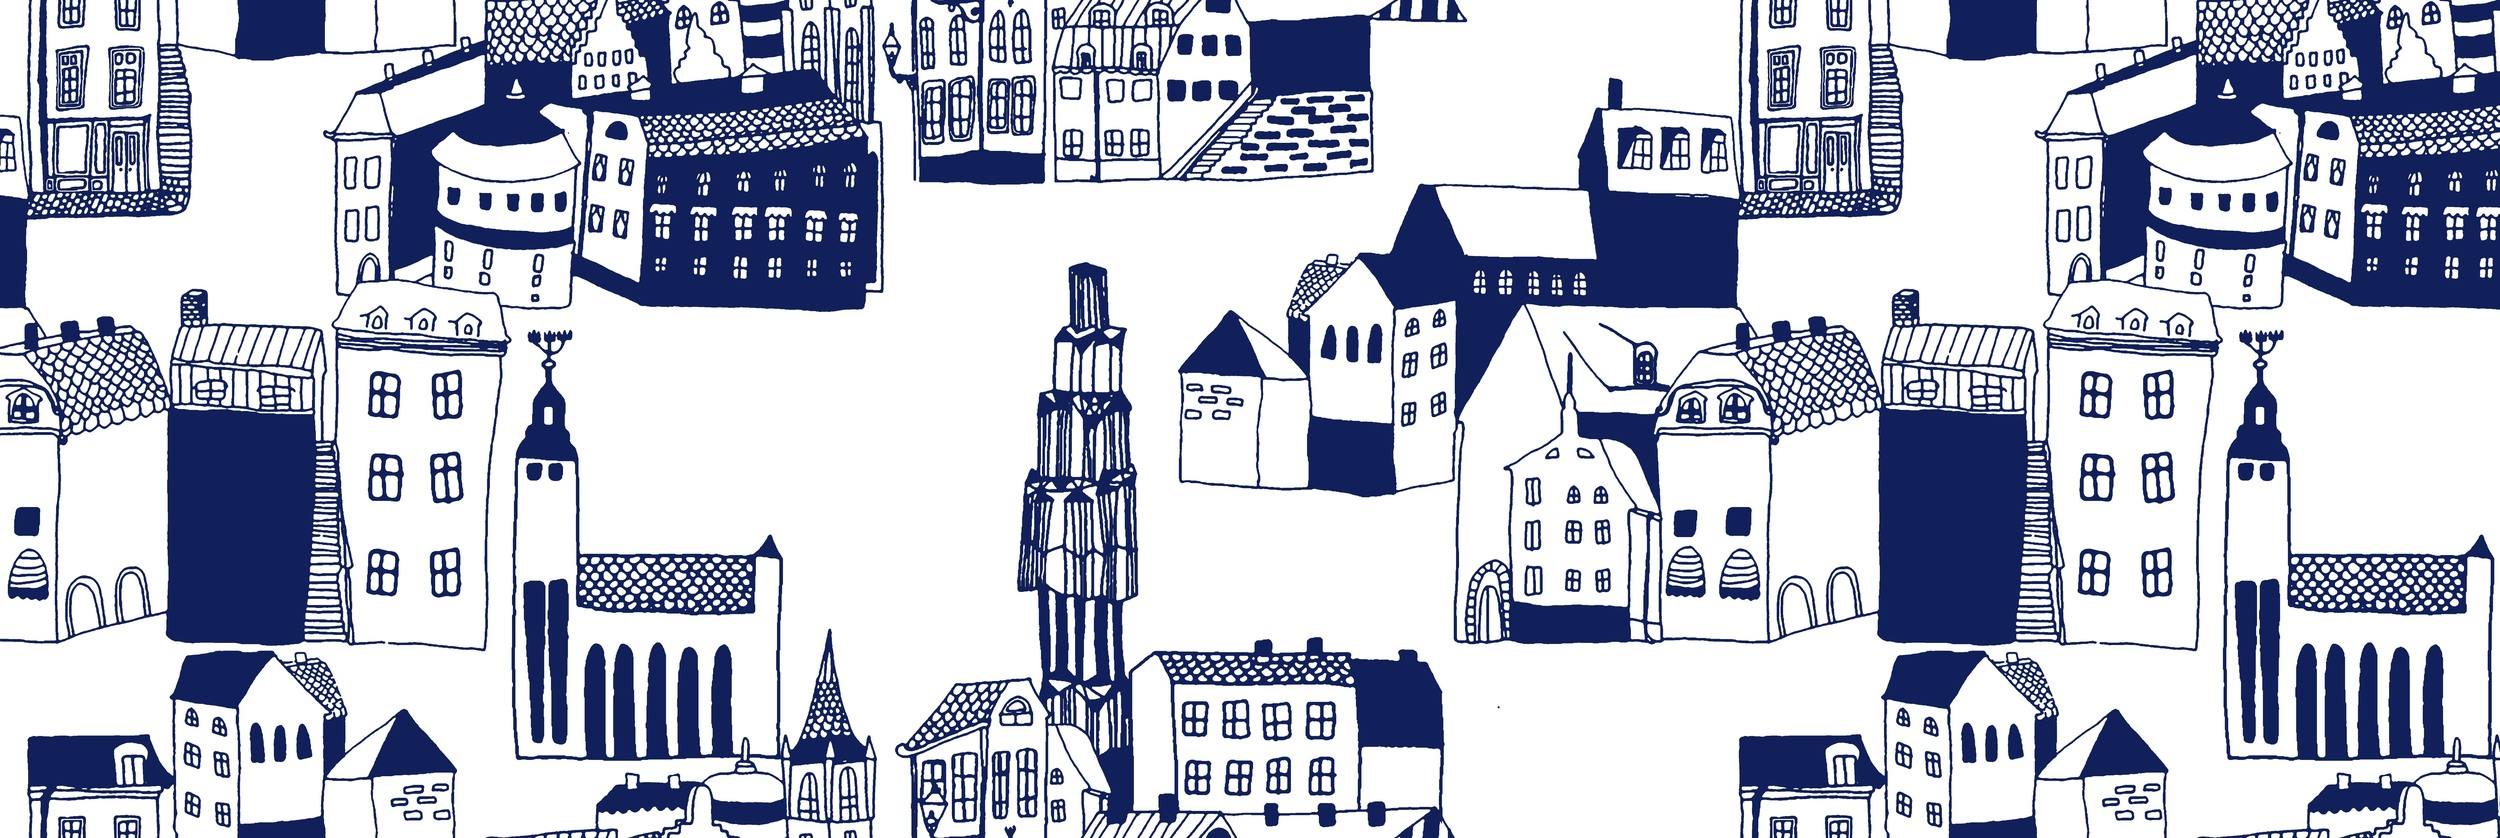 Stockholm Cityscape for funkis SS14